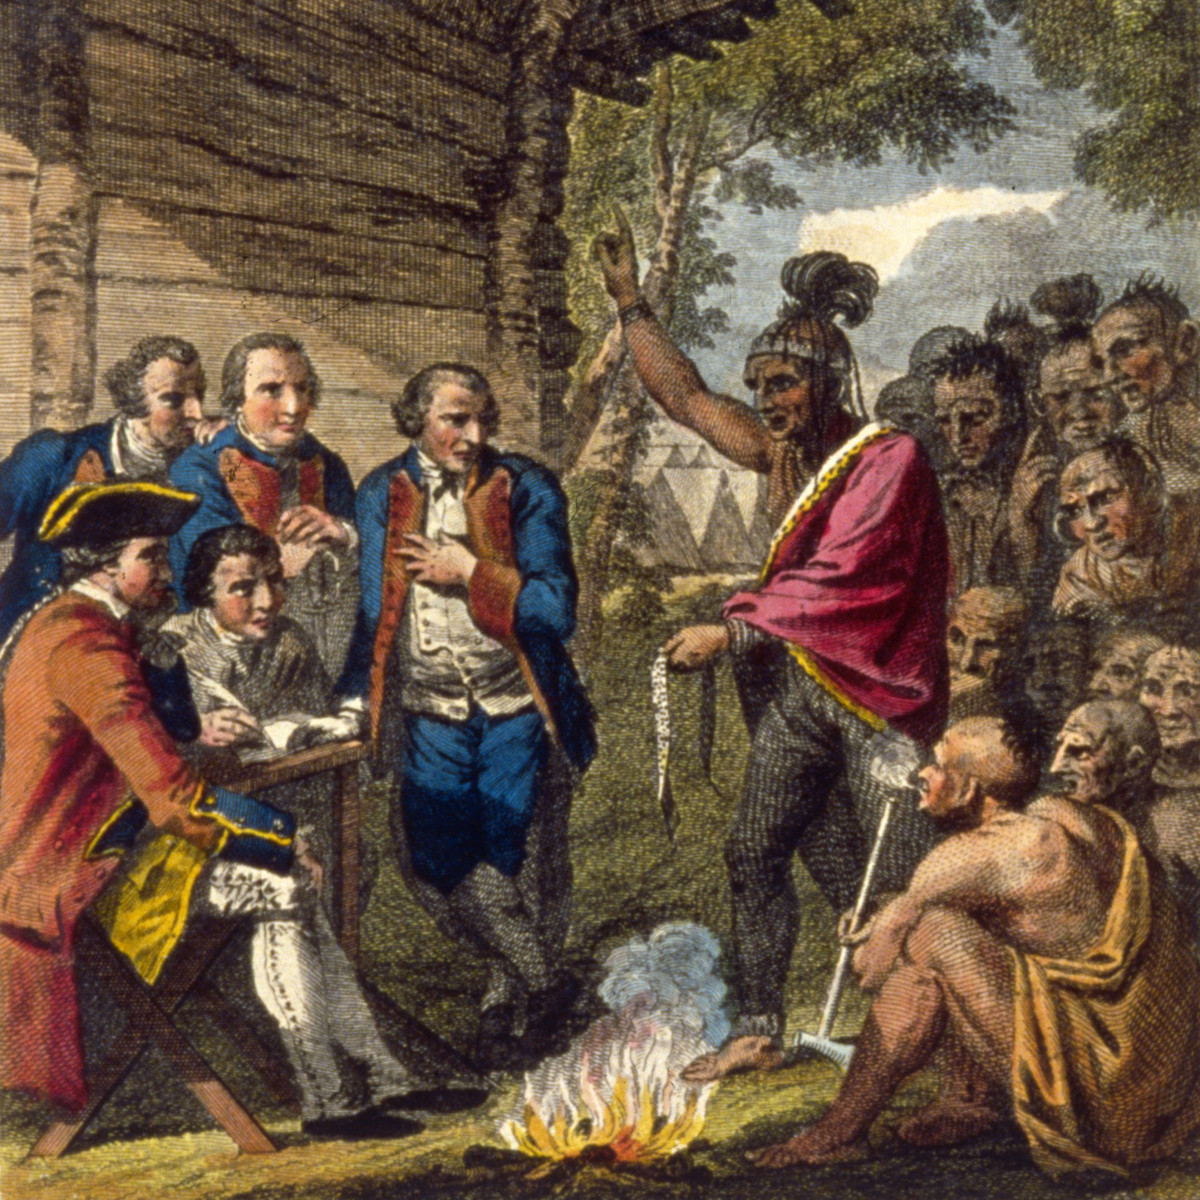 An illustration of Ottawa Chief, Pontiac confronting Colonel Henry Bouquet who authorized his officers to spread smallpox amongst native Americans by deliberately infecting blankets after peace talks.